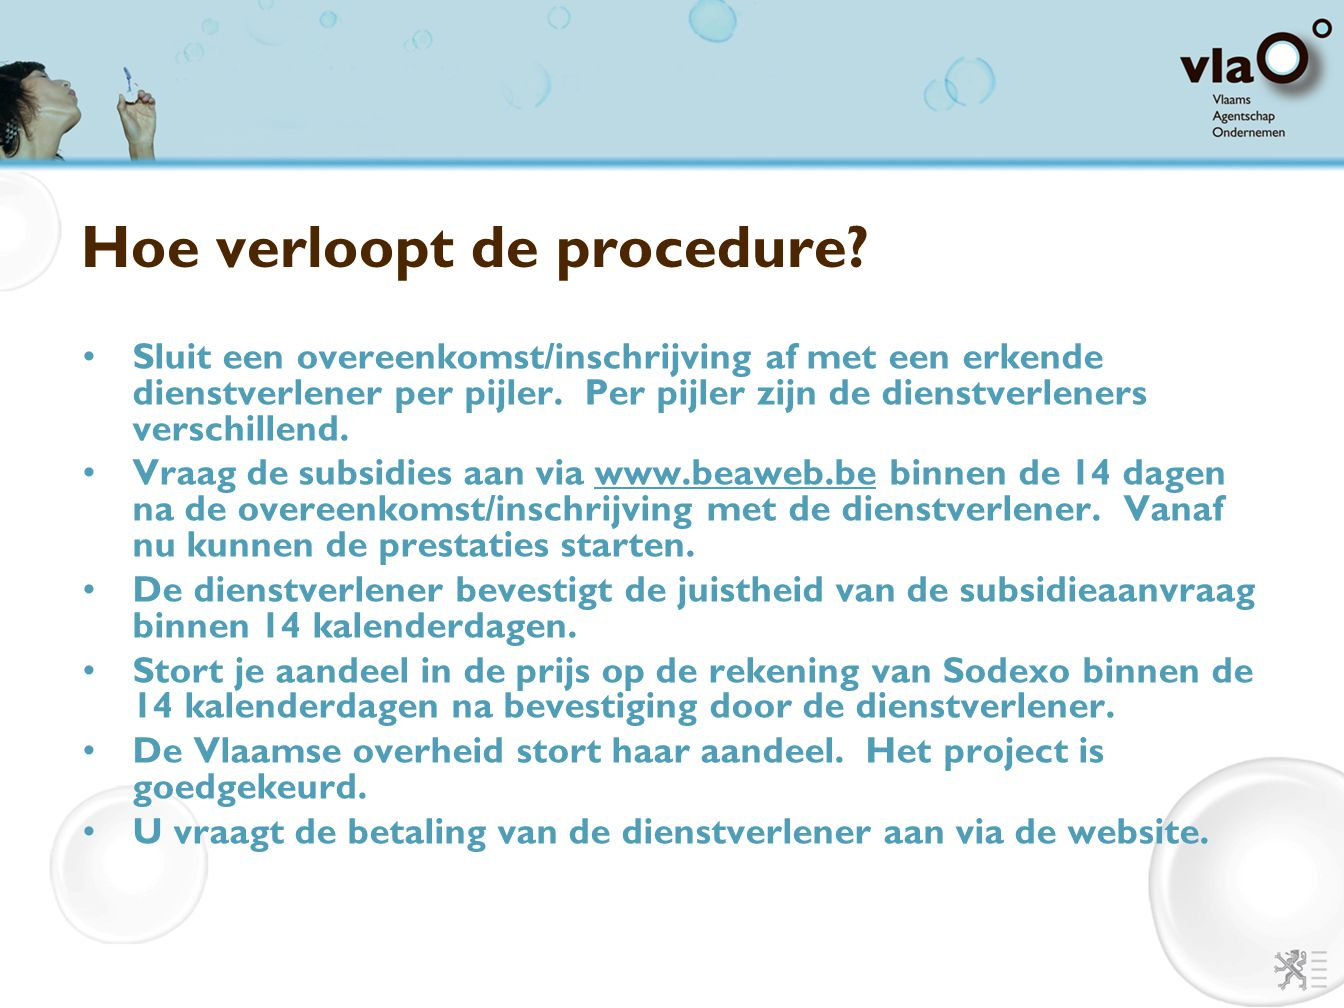 Hoe verloopt de procedure